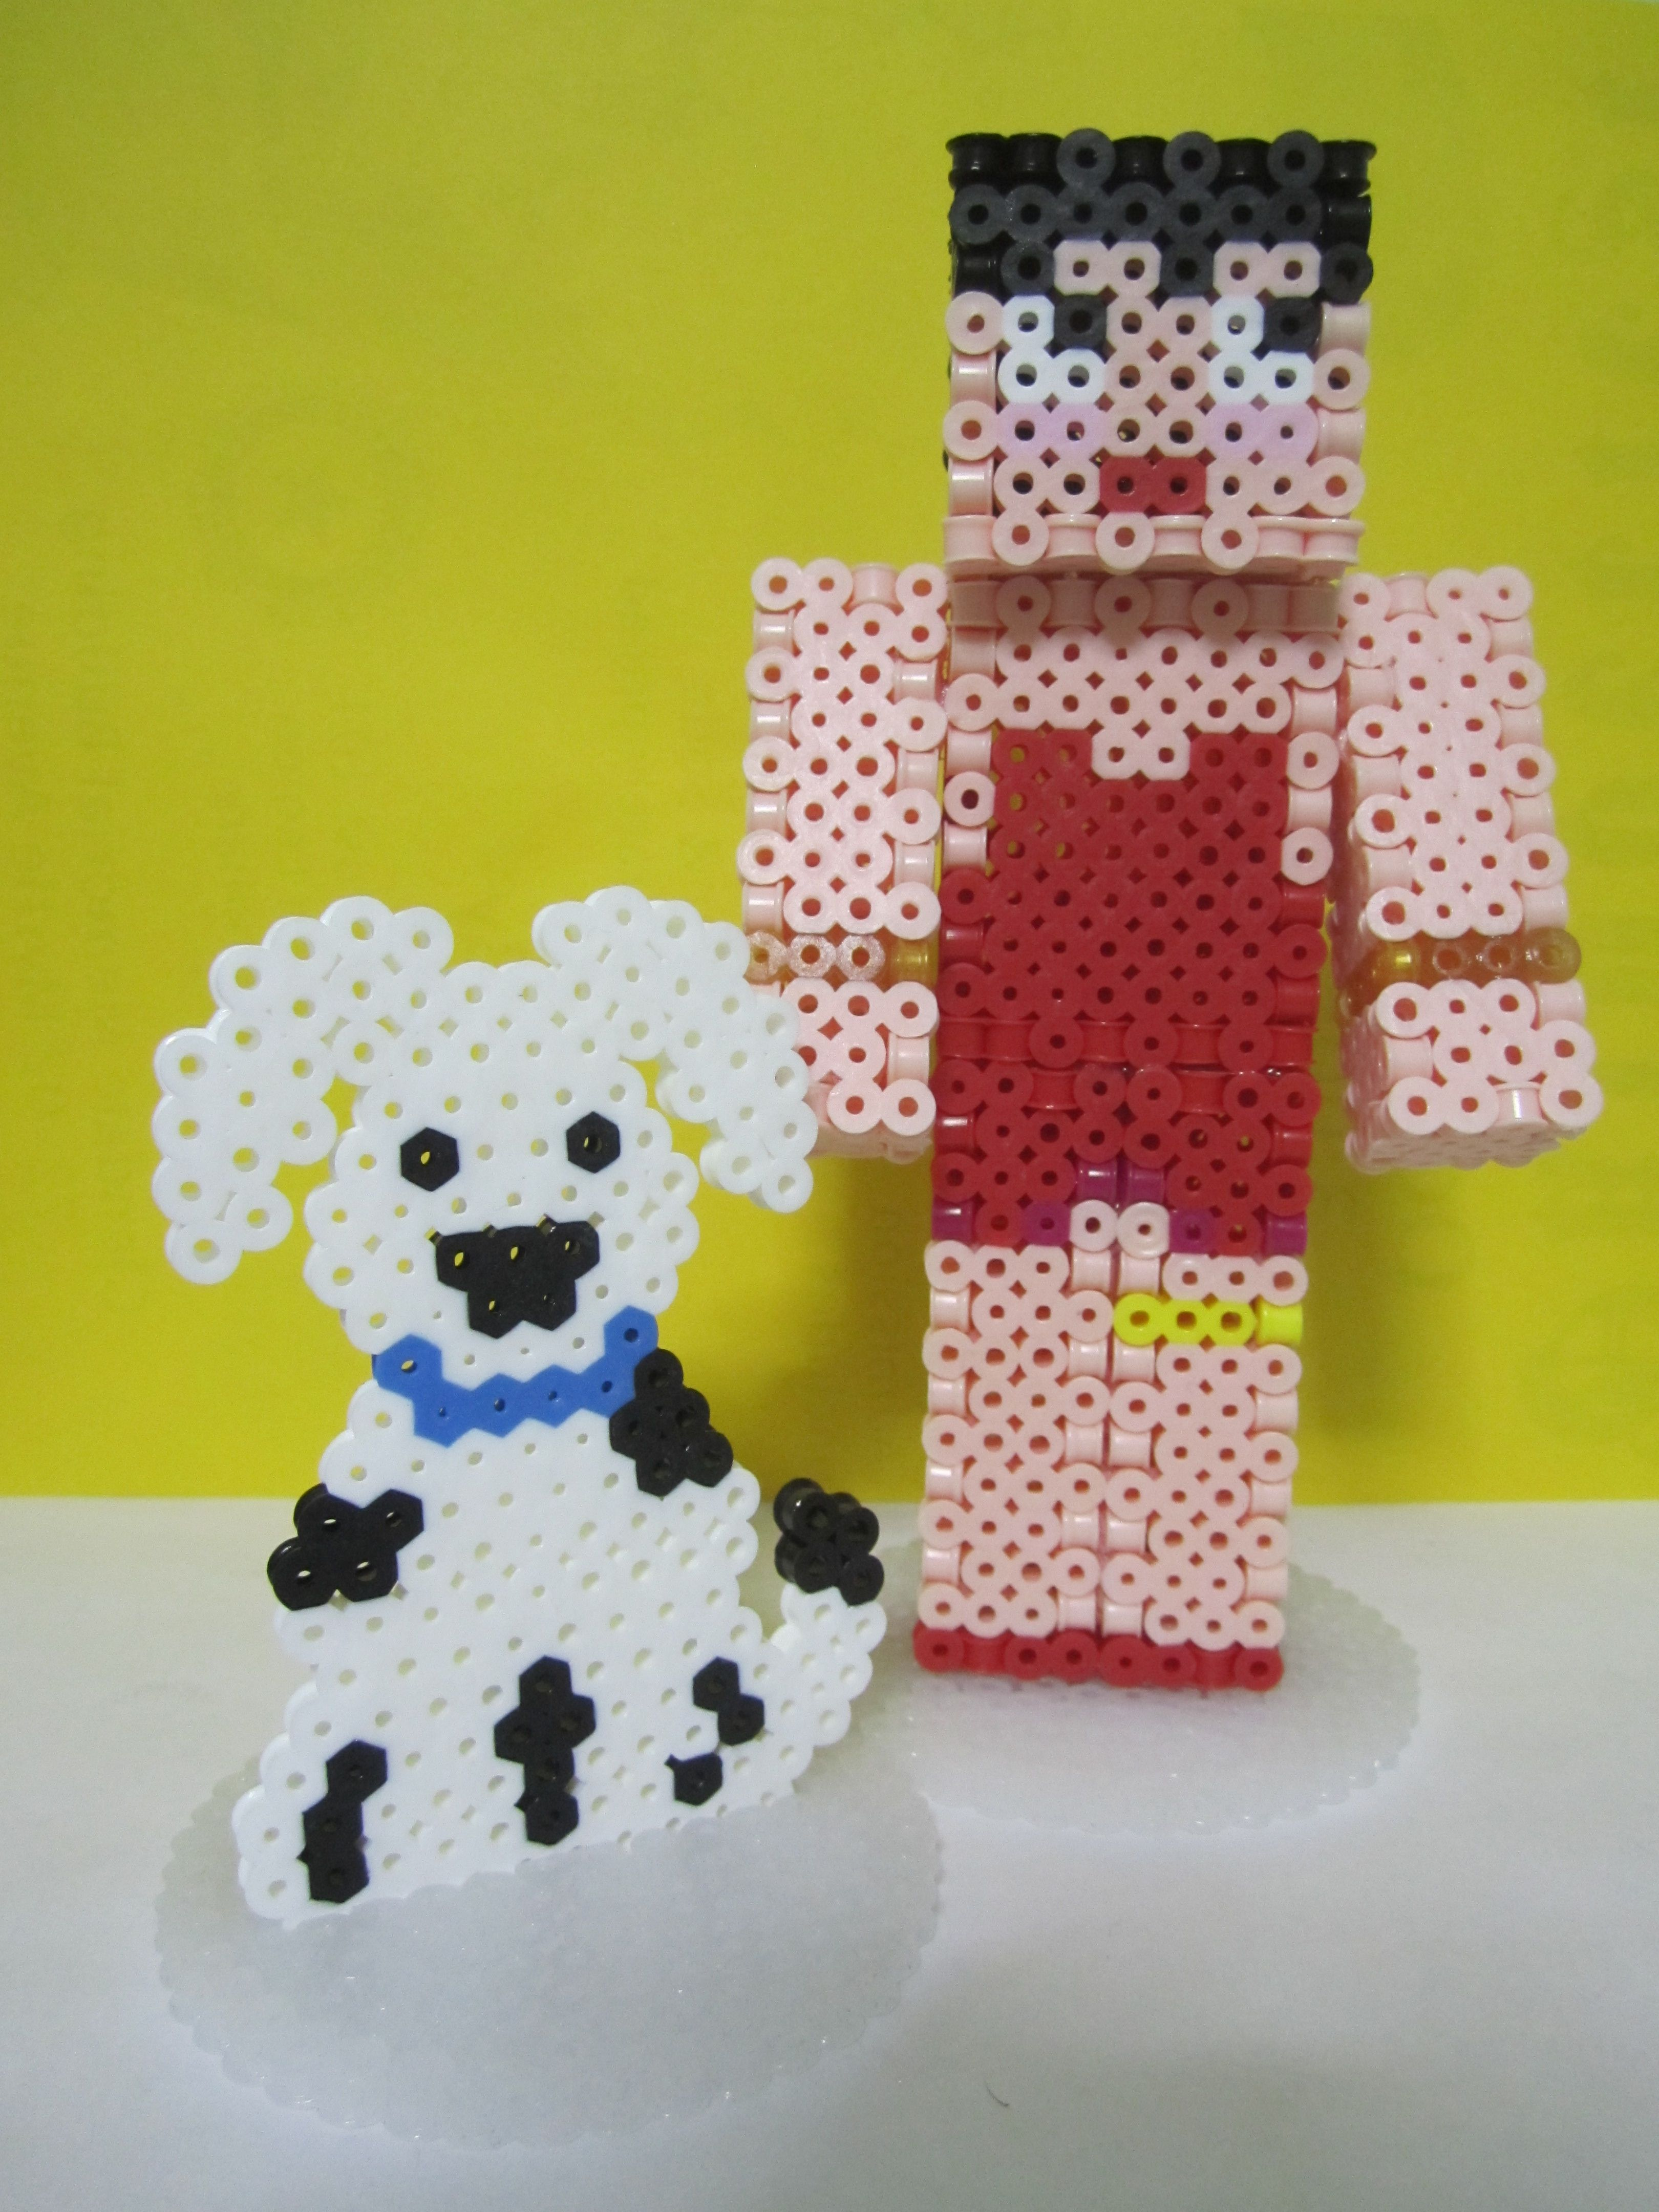 Betty Boop with Pudgy Minecraft Skin 3D_Perler Beads